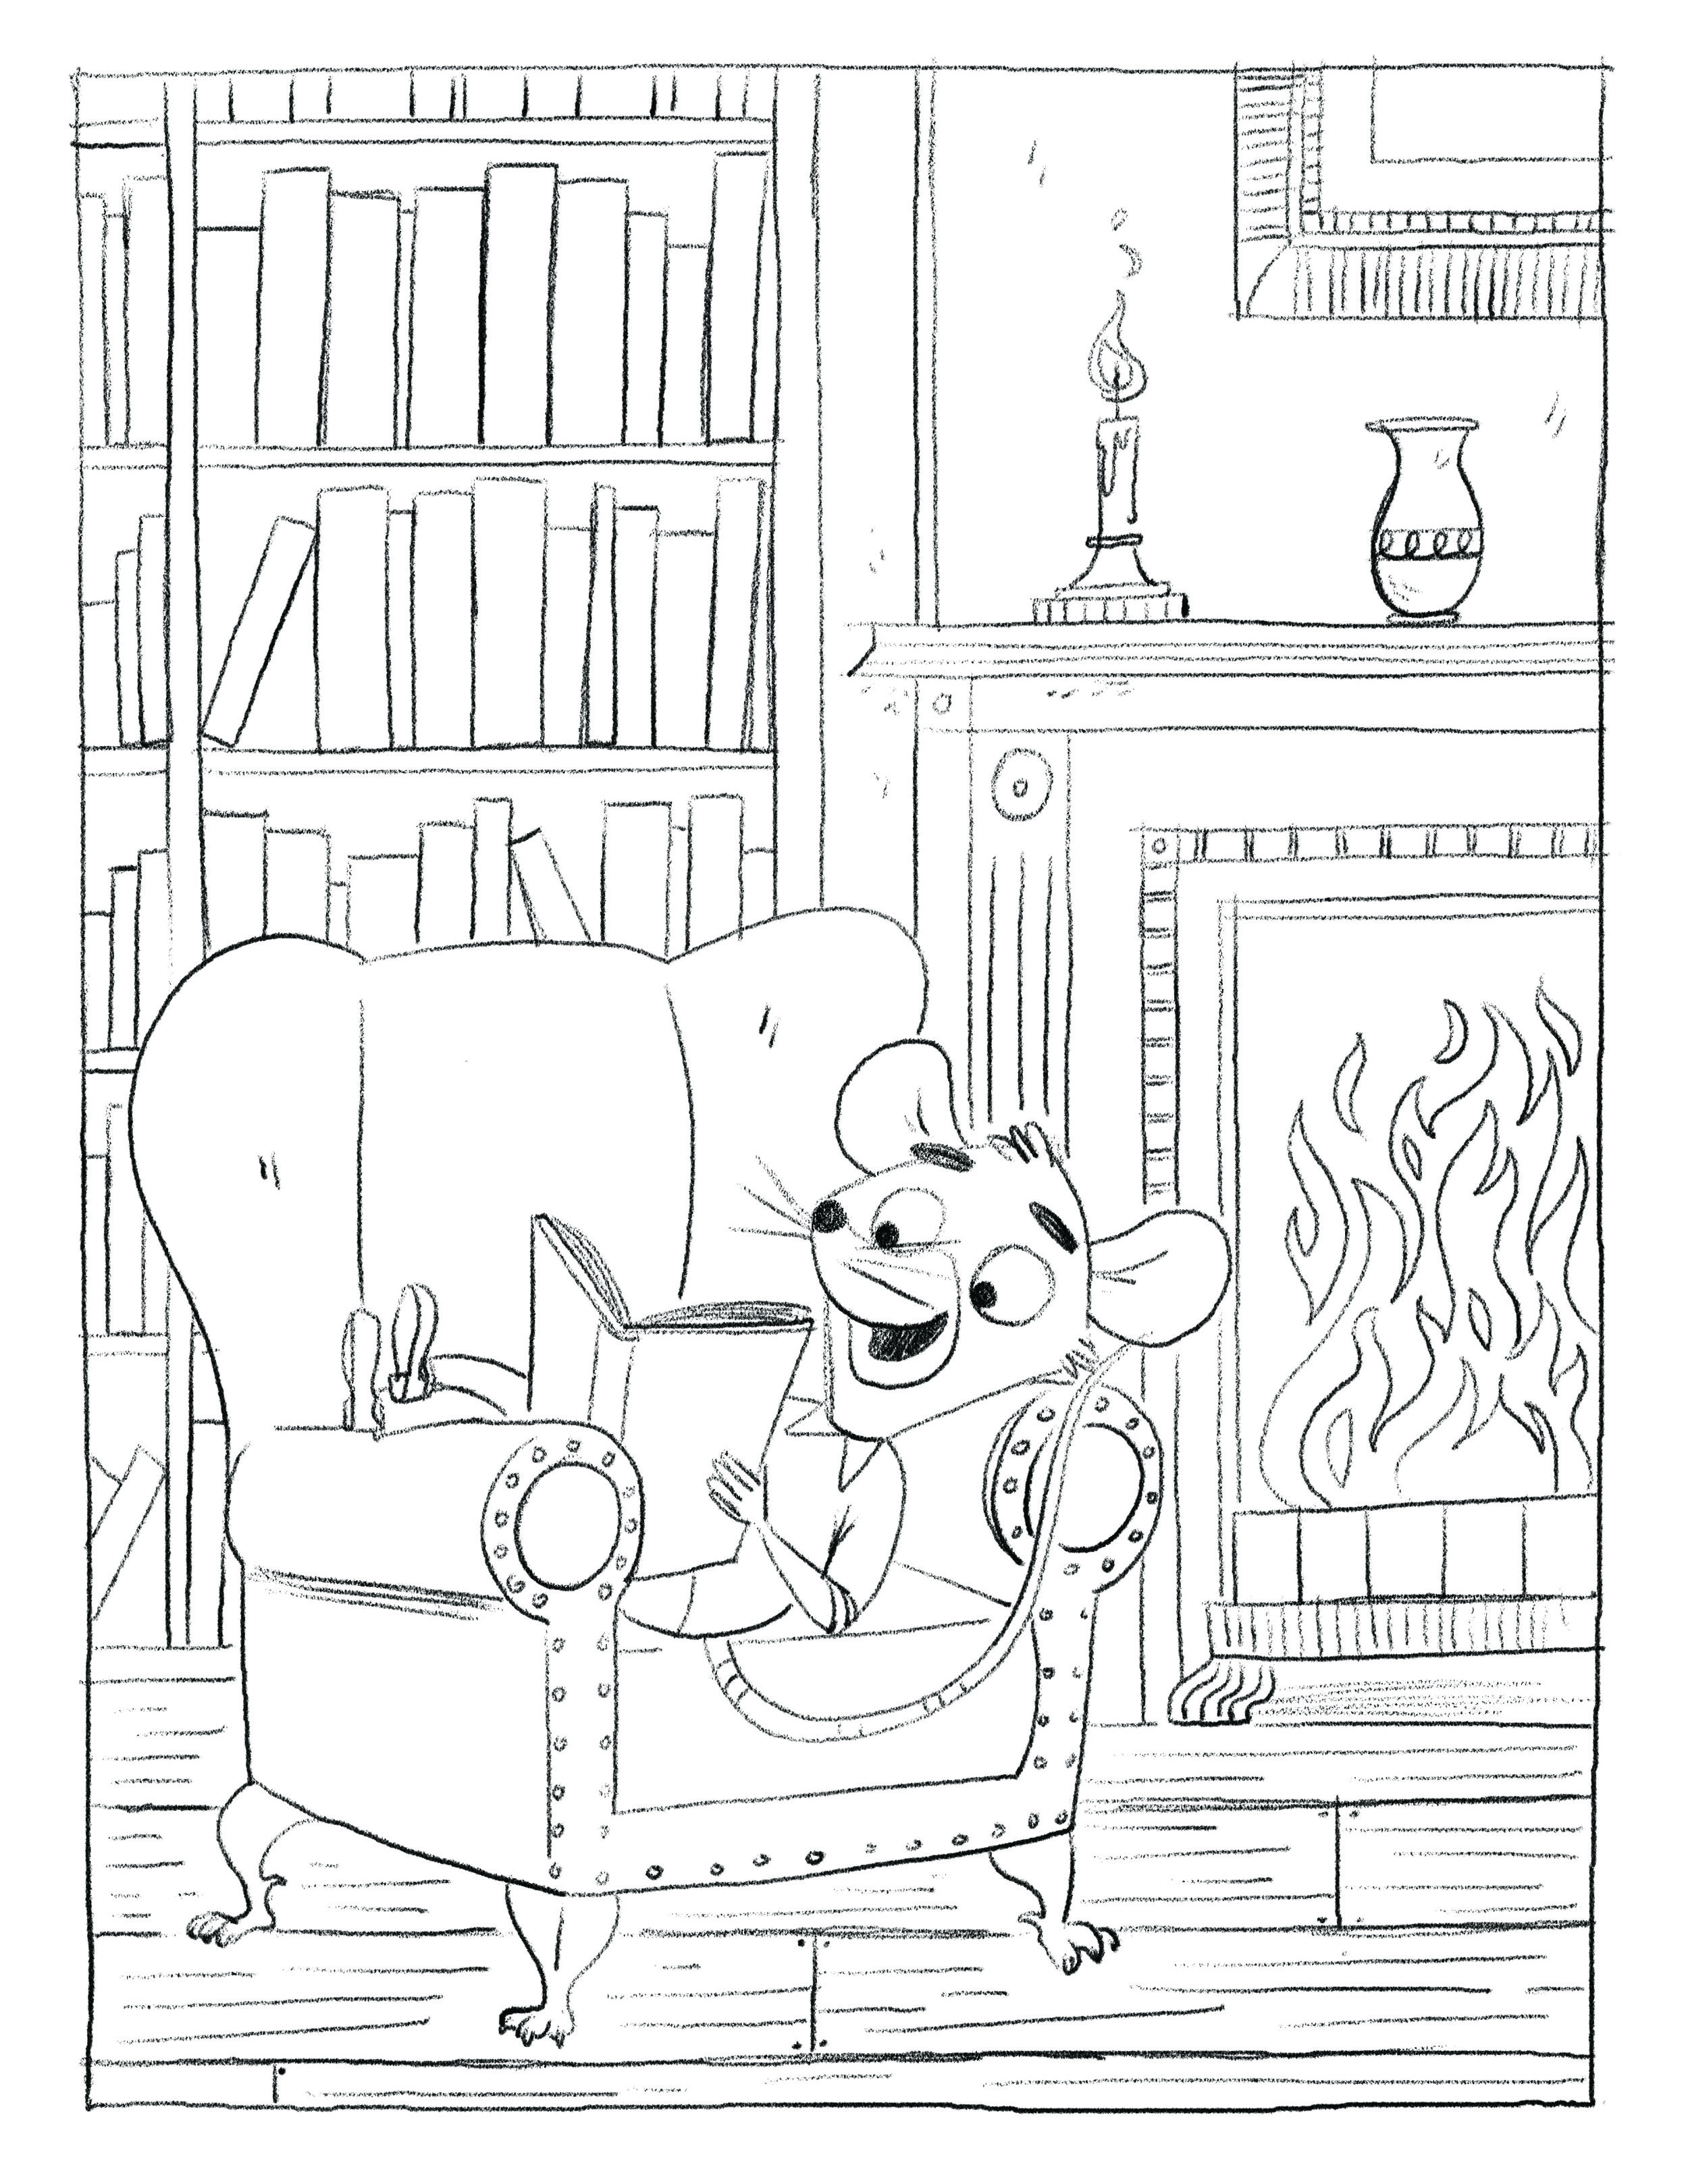 Book One: Henry in the library.